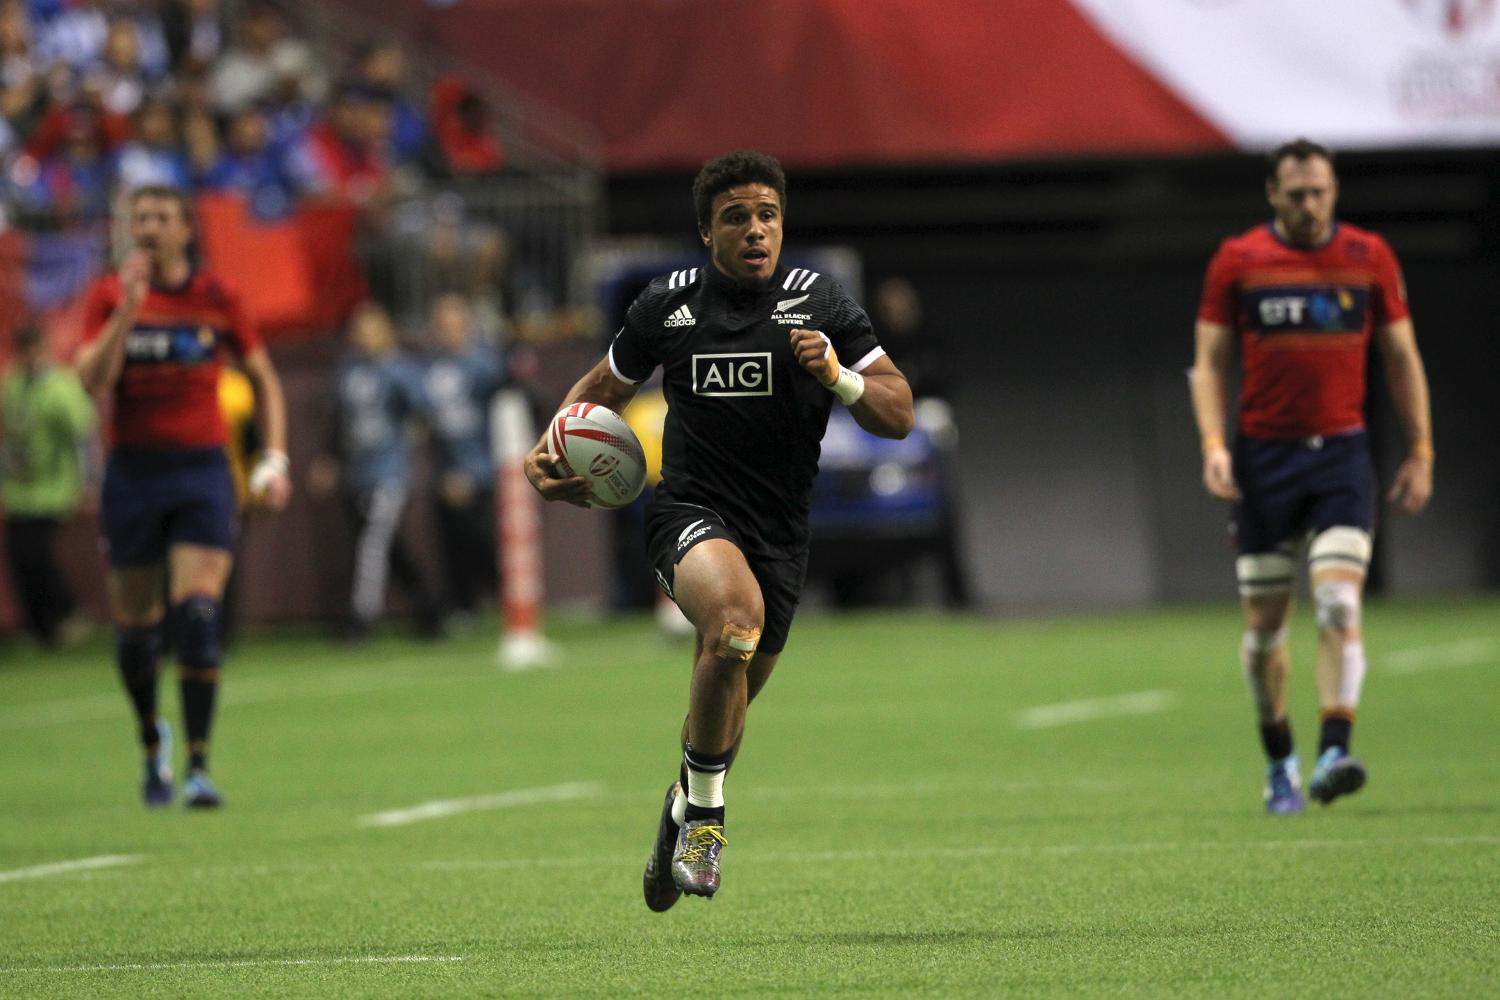 HSBC Canada Sevens - New Zealand v Scotland